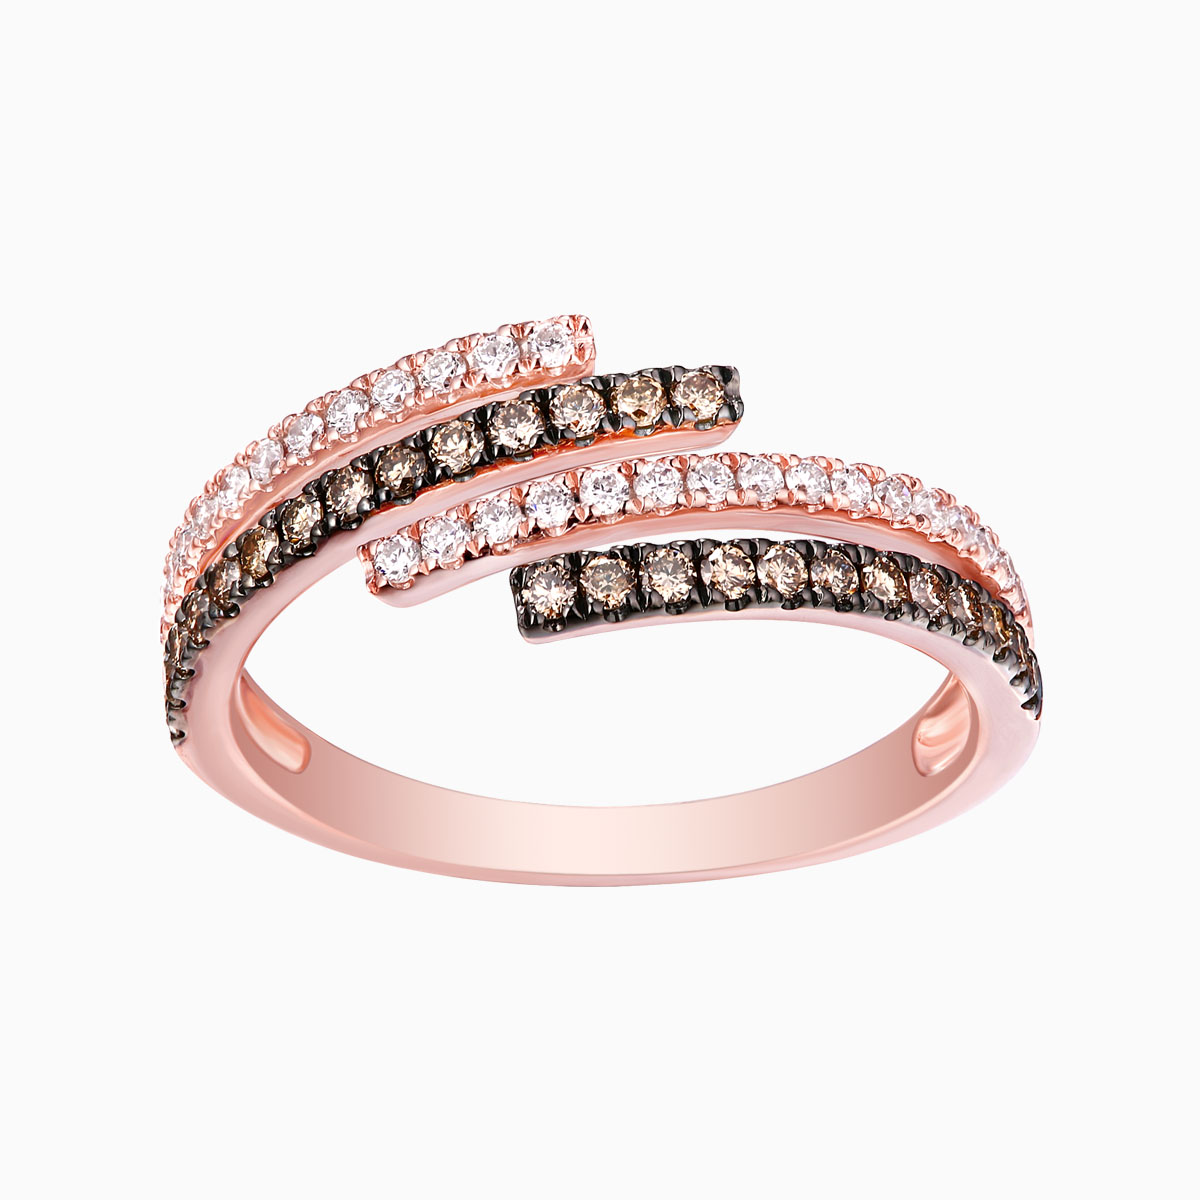 R24857WBR- 14K Rose Gold Diamond Ring, 0.48 TCW